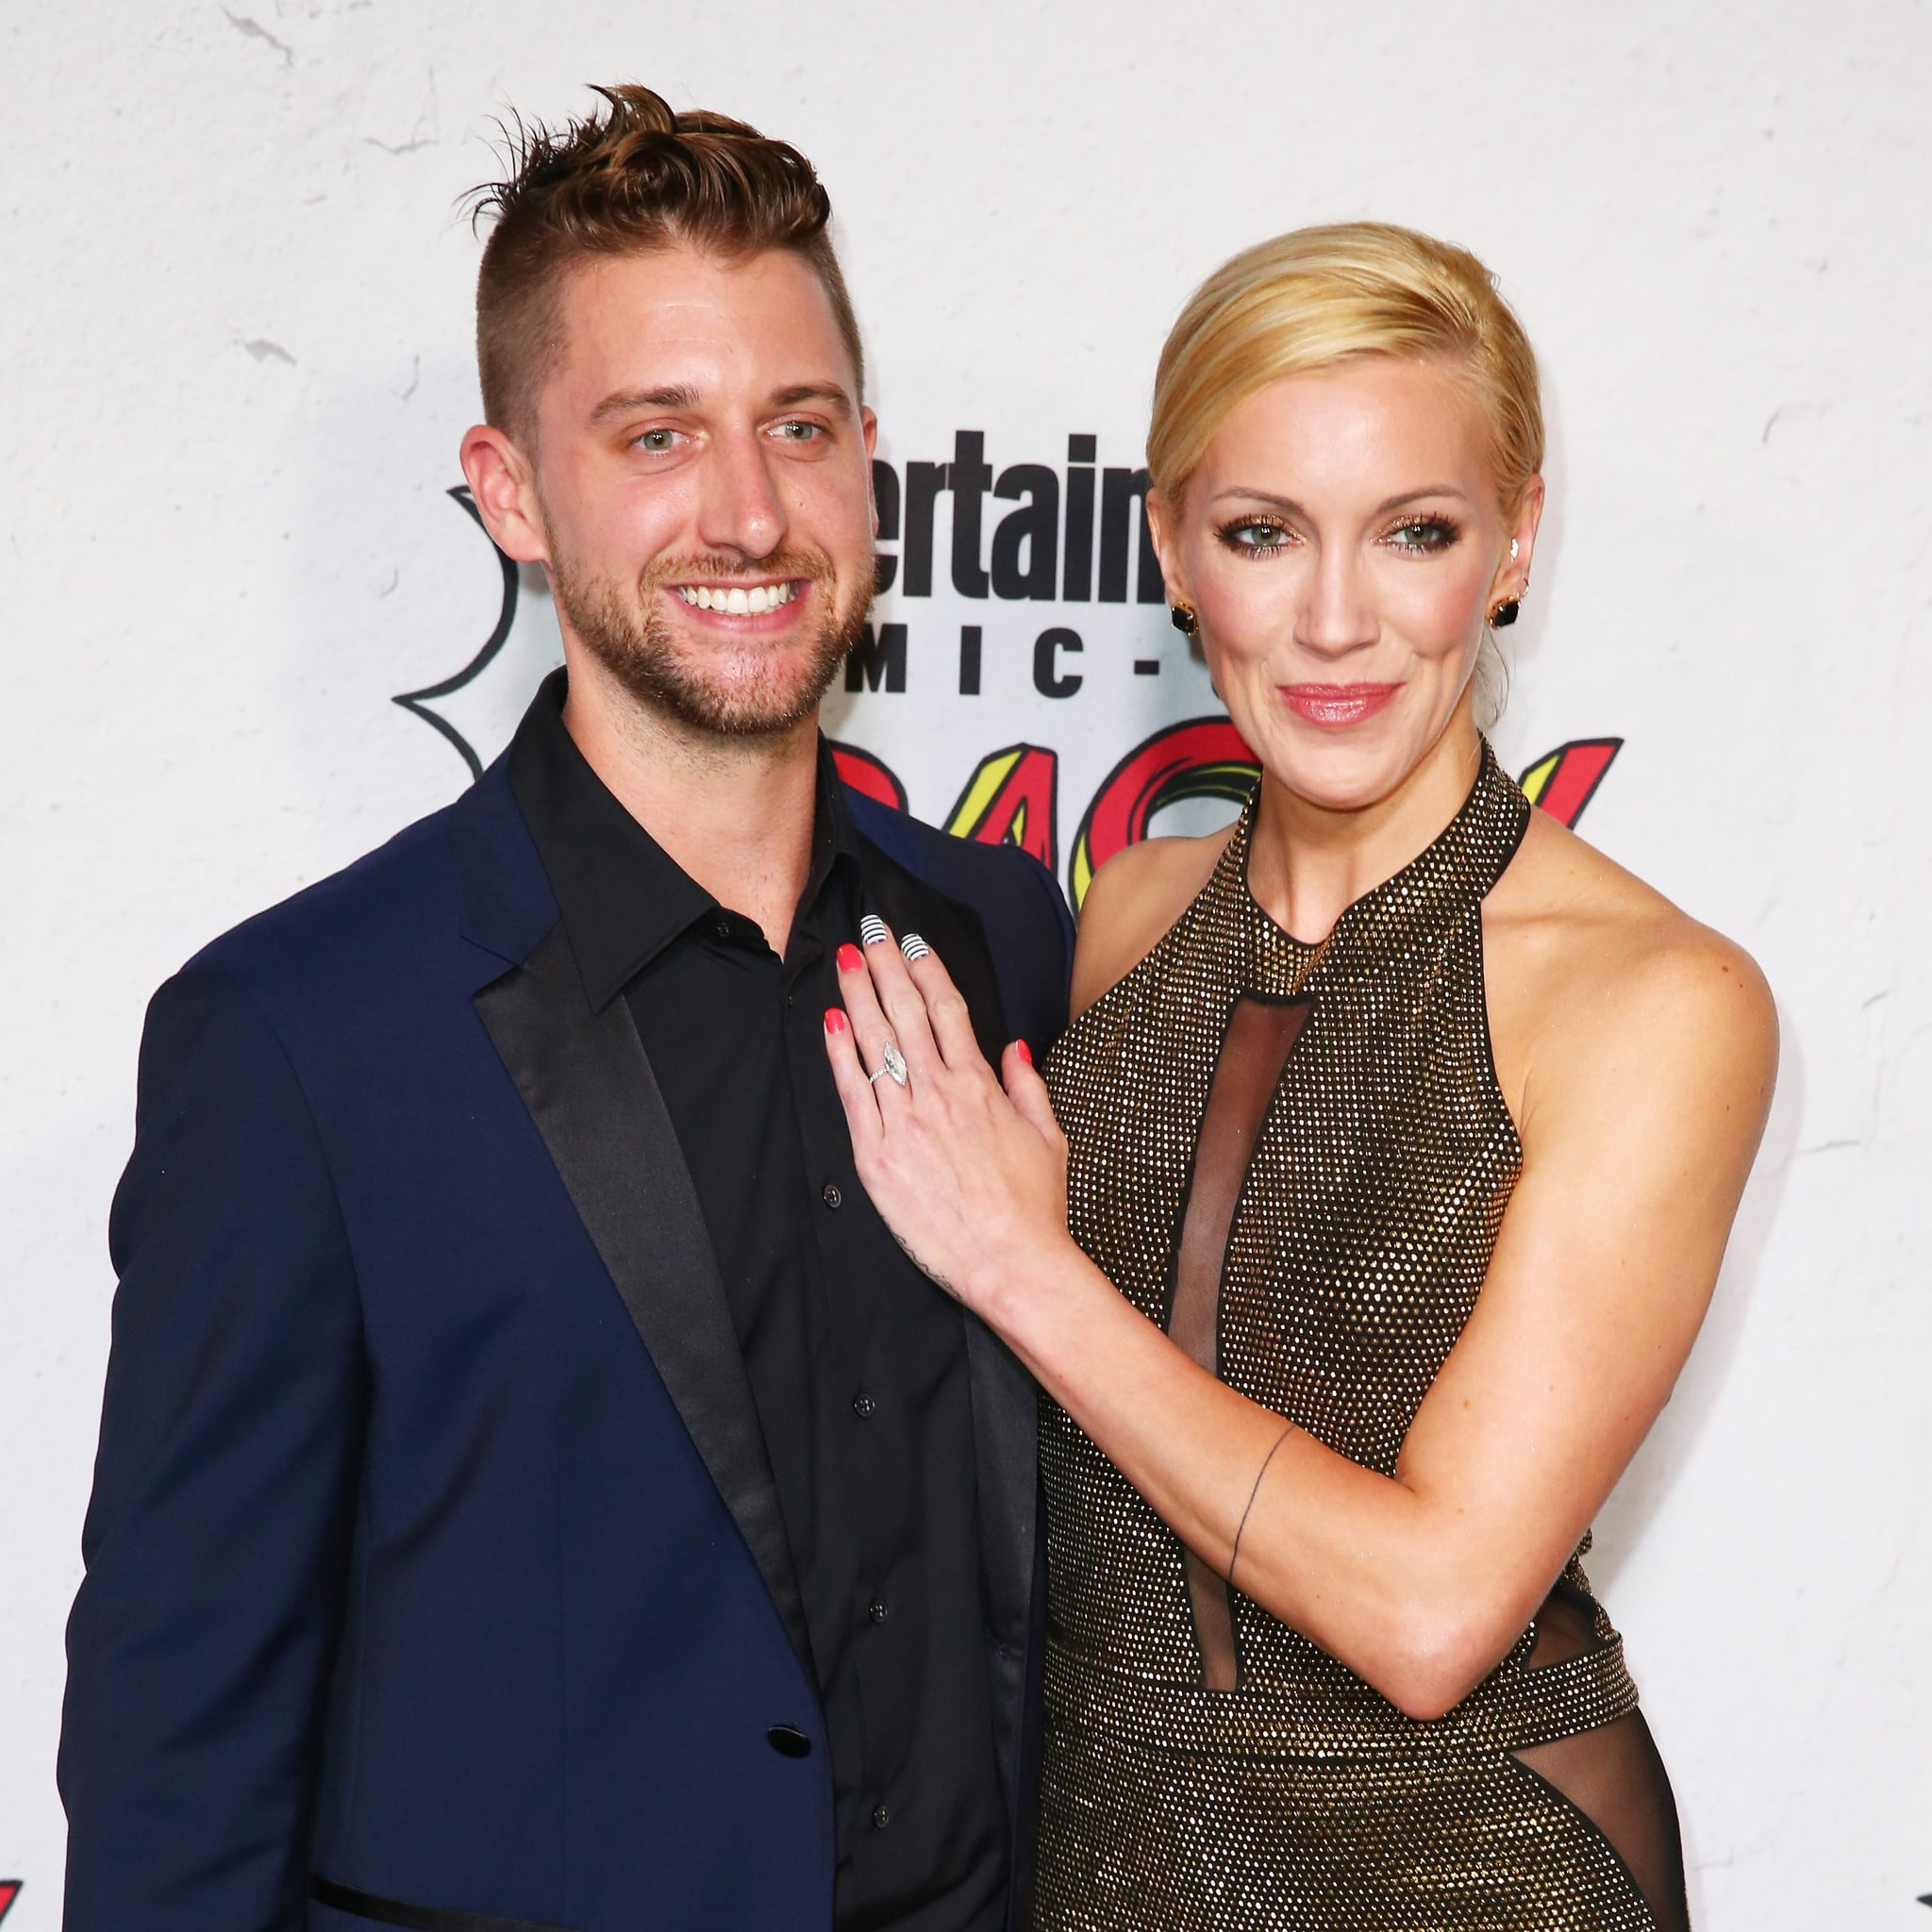 Here Comes the Bride! Arrow's Katie Cassidy Is Married